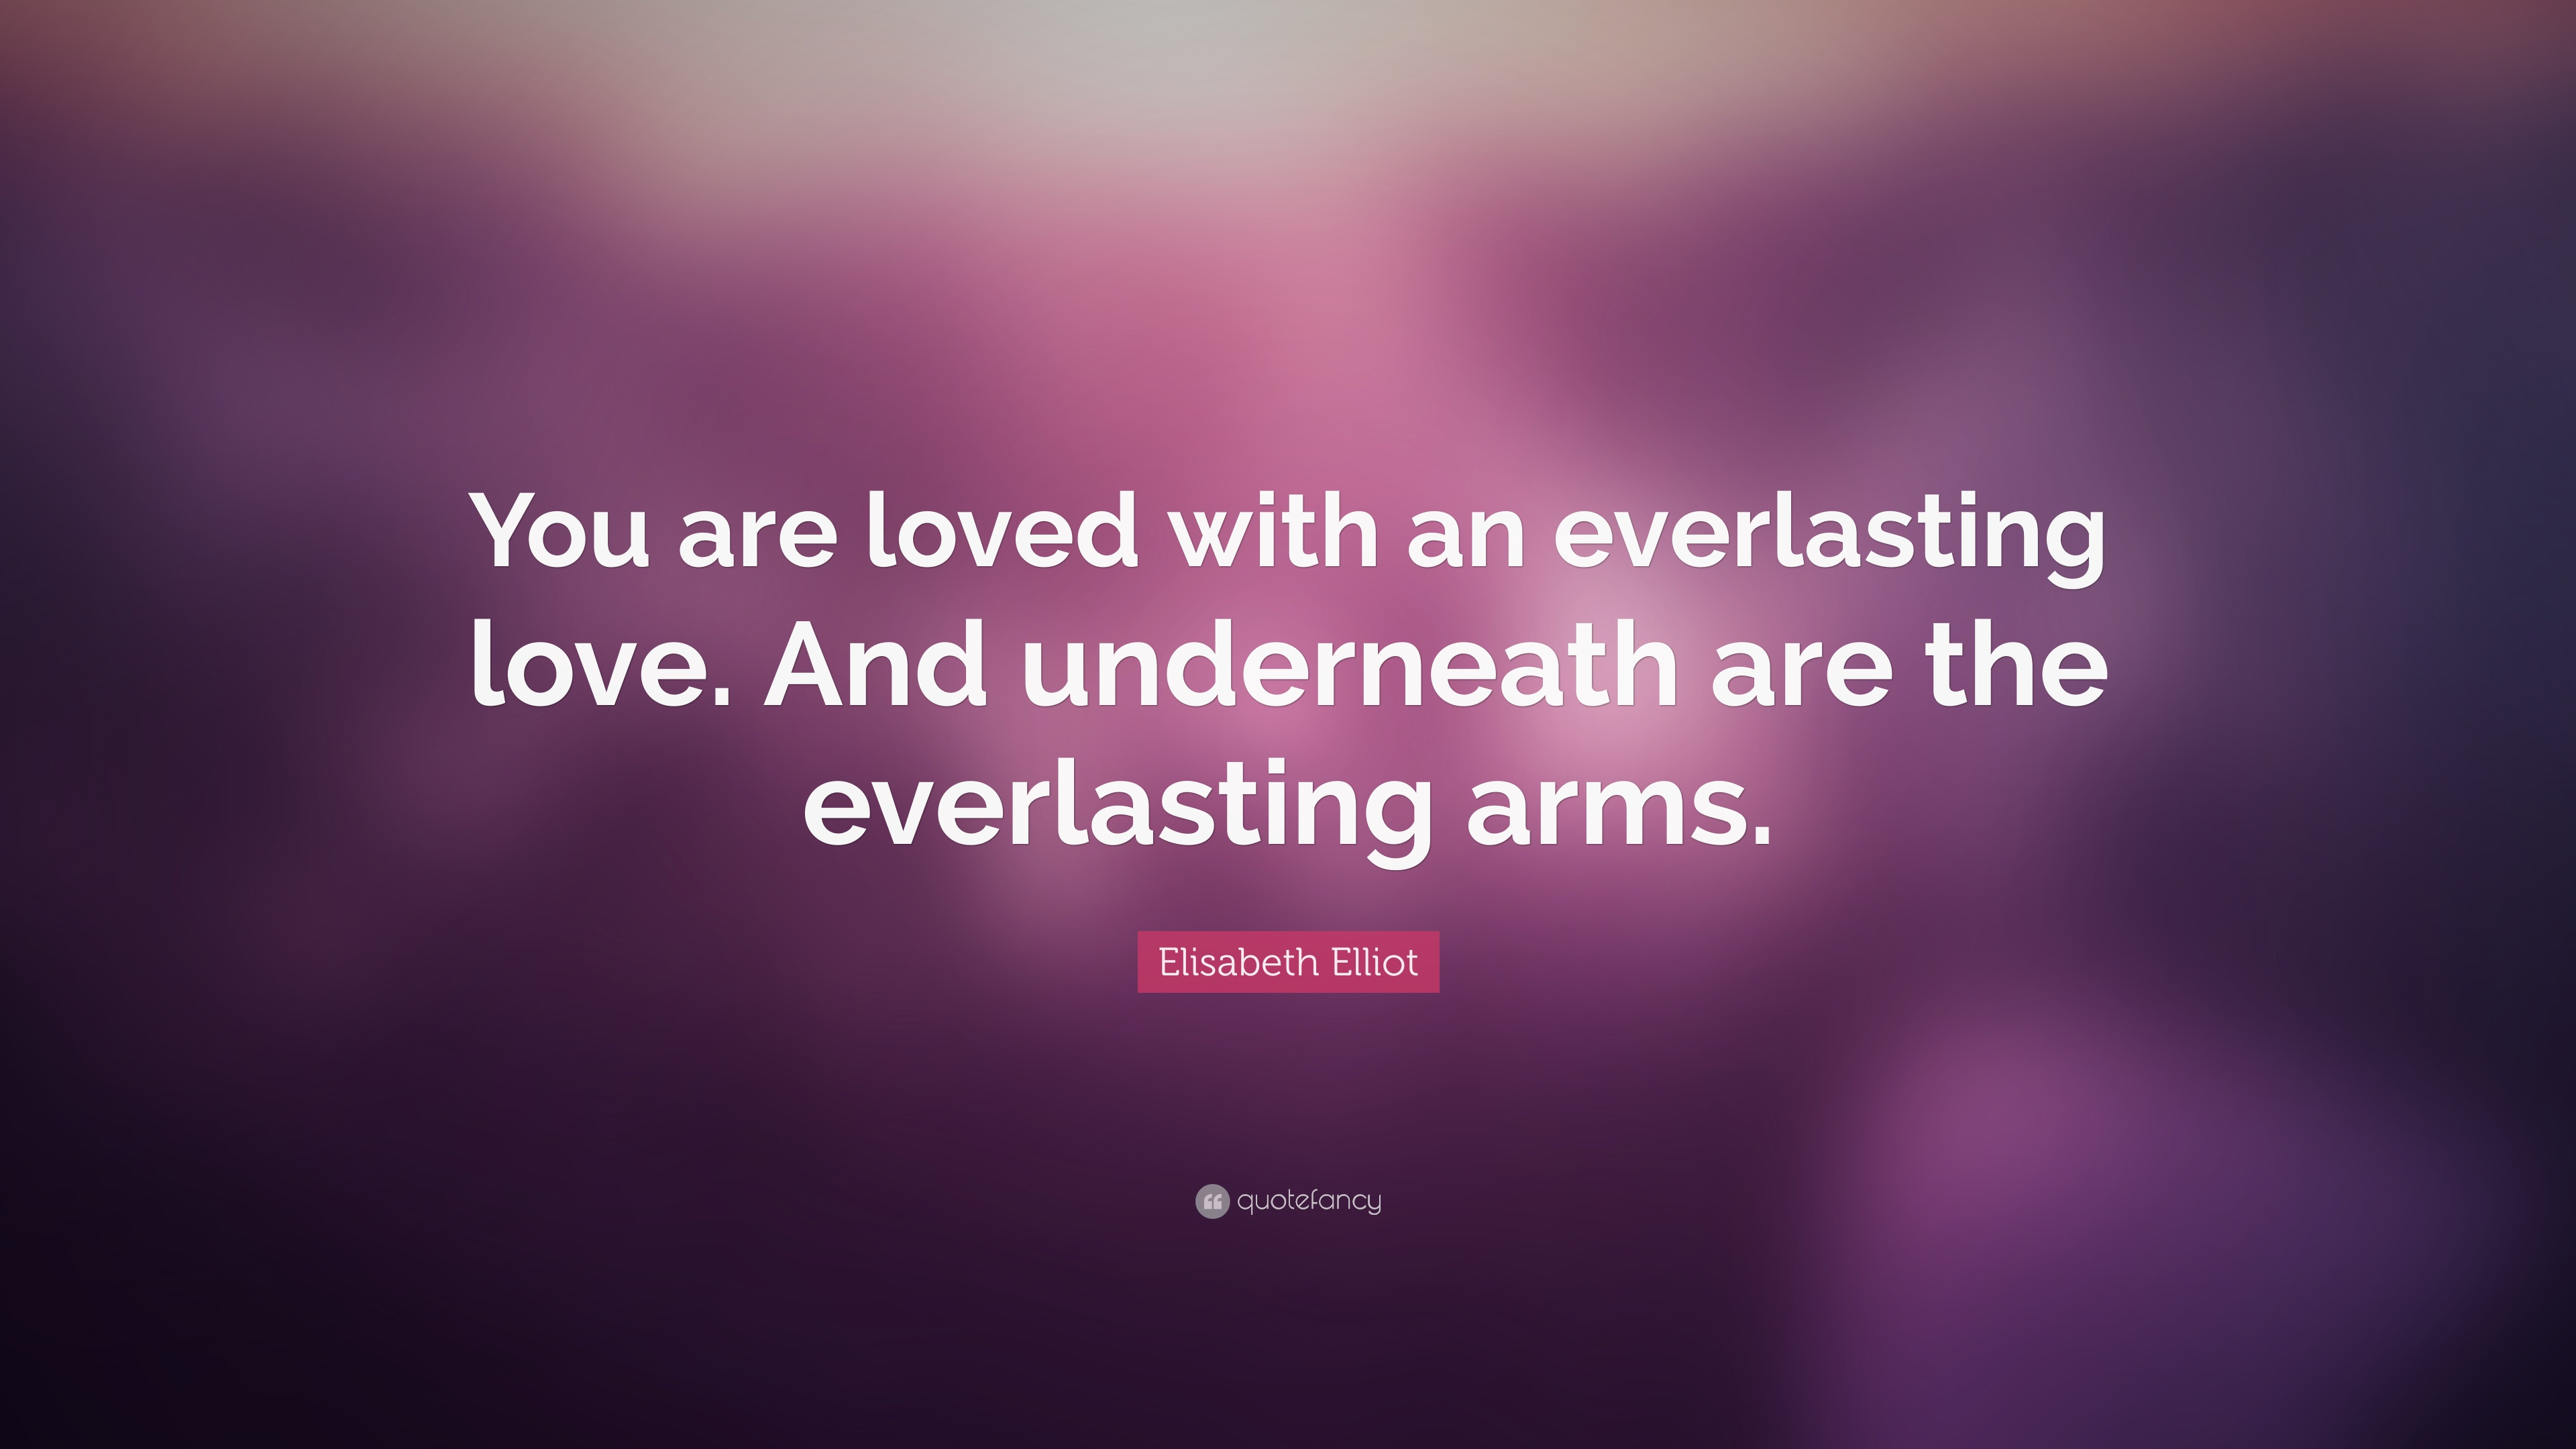 Everlasting Love Quotes Elisabeth Elliot Quote U201cYou Are Loved With An Everlasting  Love